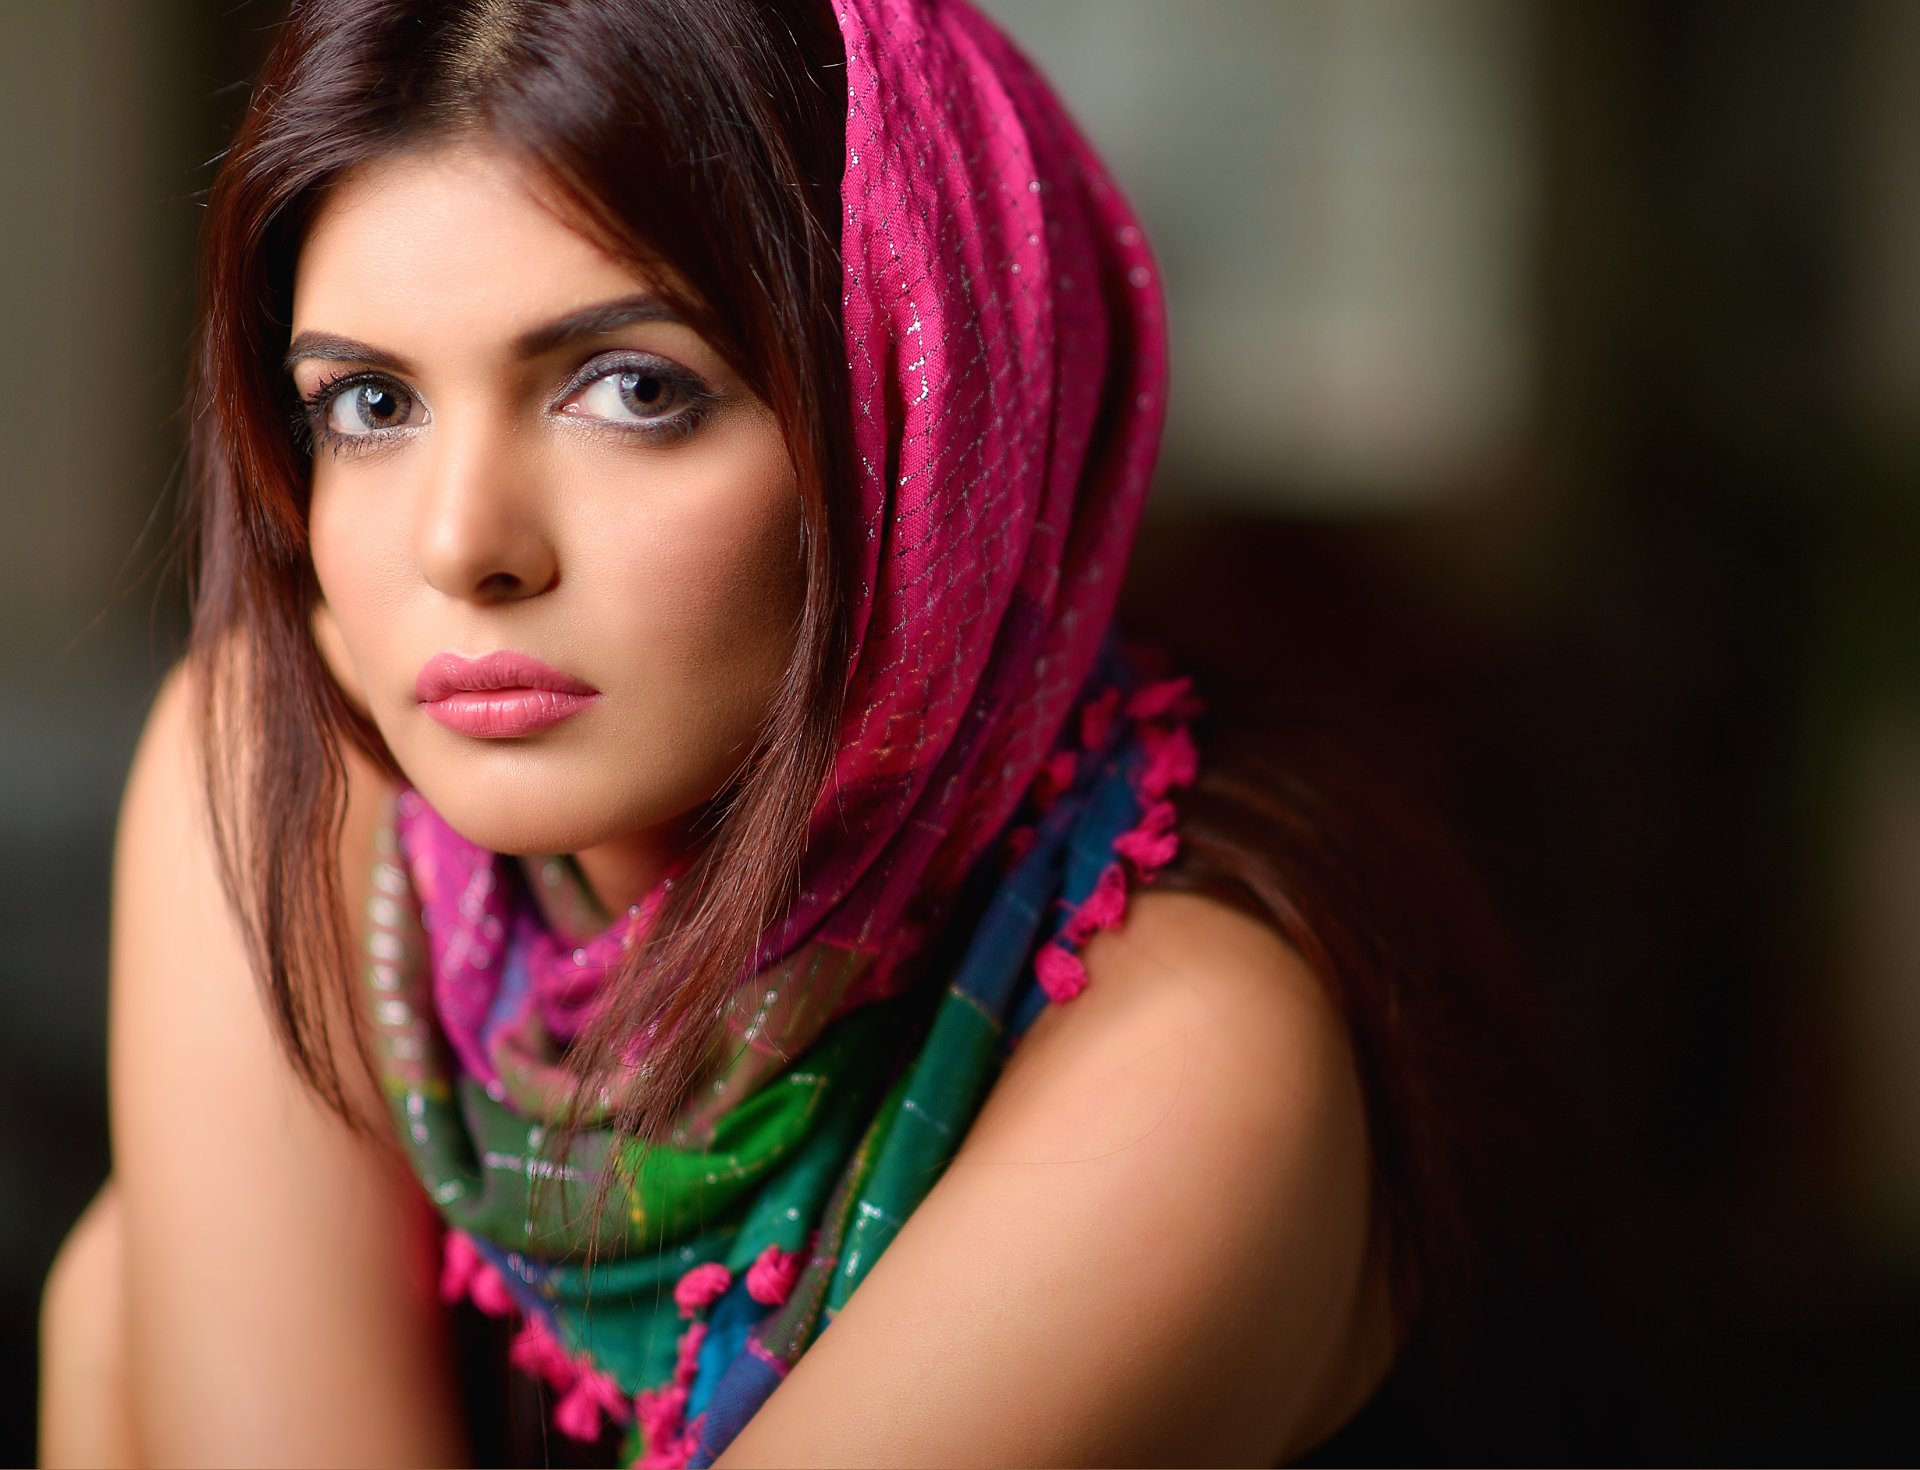 Ihana dhillon full hd wallpaper and background image 3300x2527 id 589404 - Indian beautiful models hd wallpapers ...